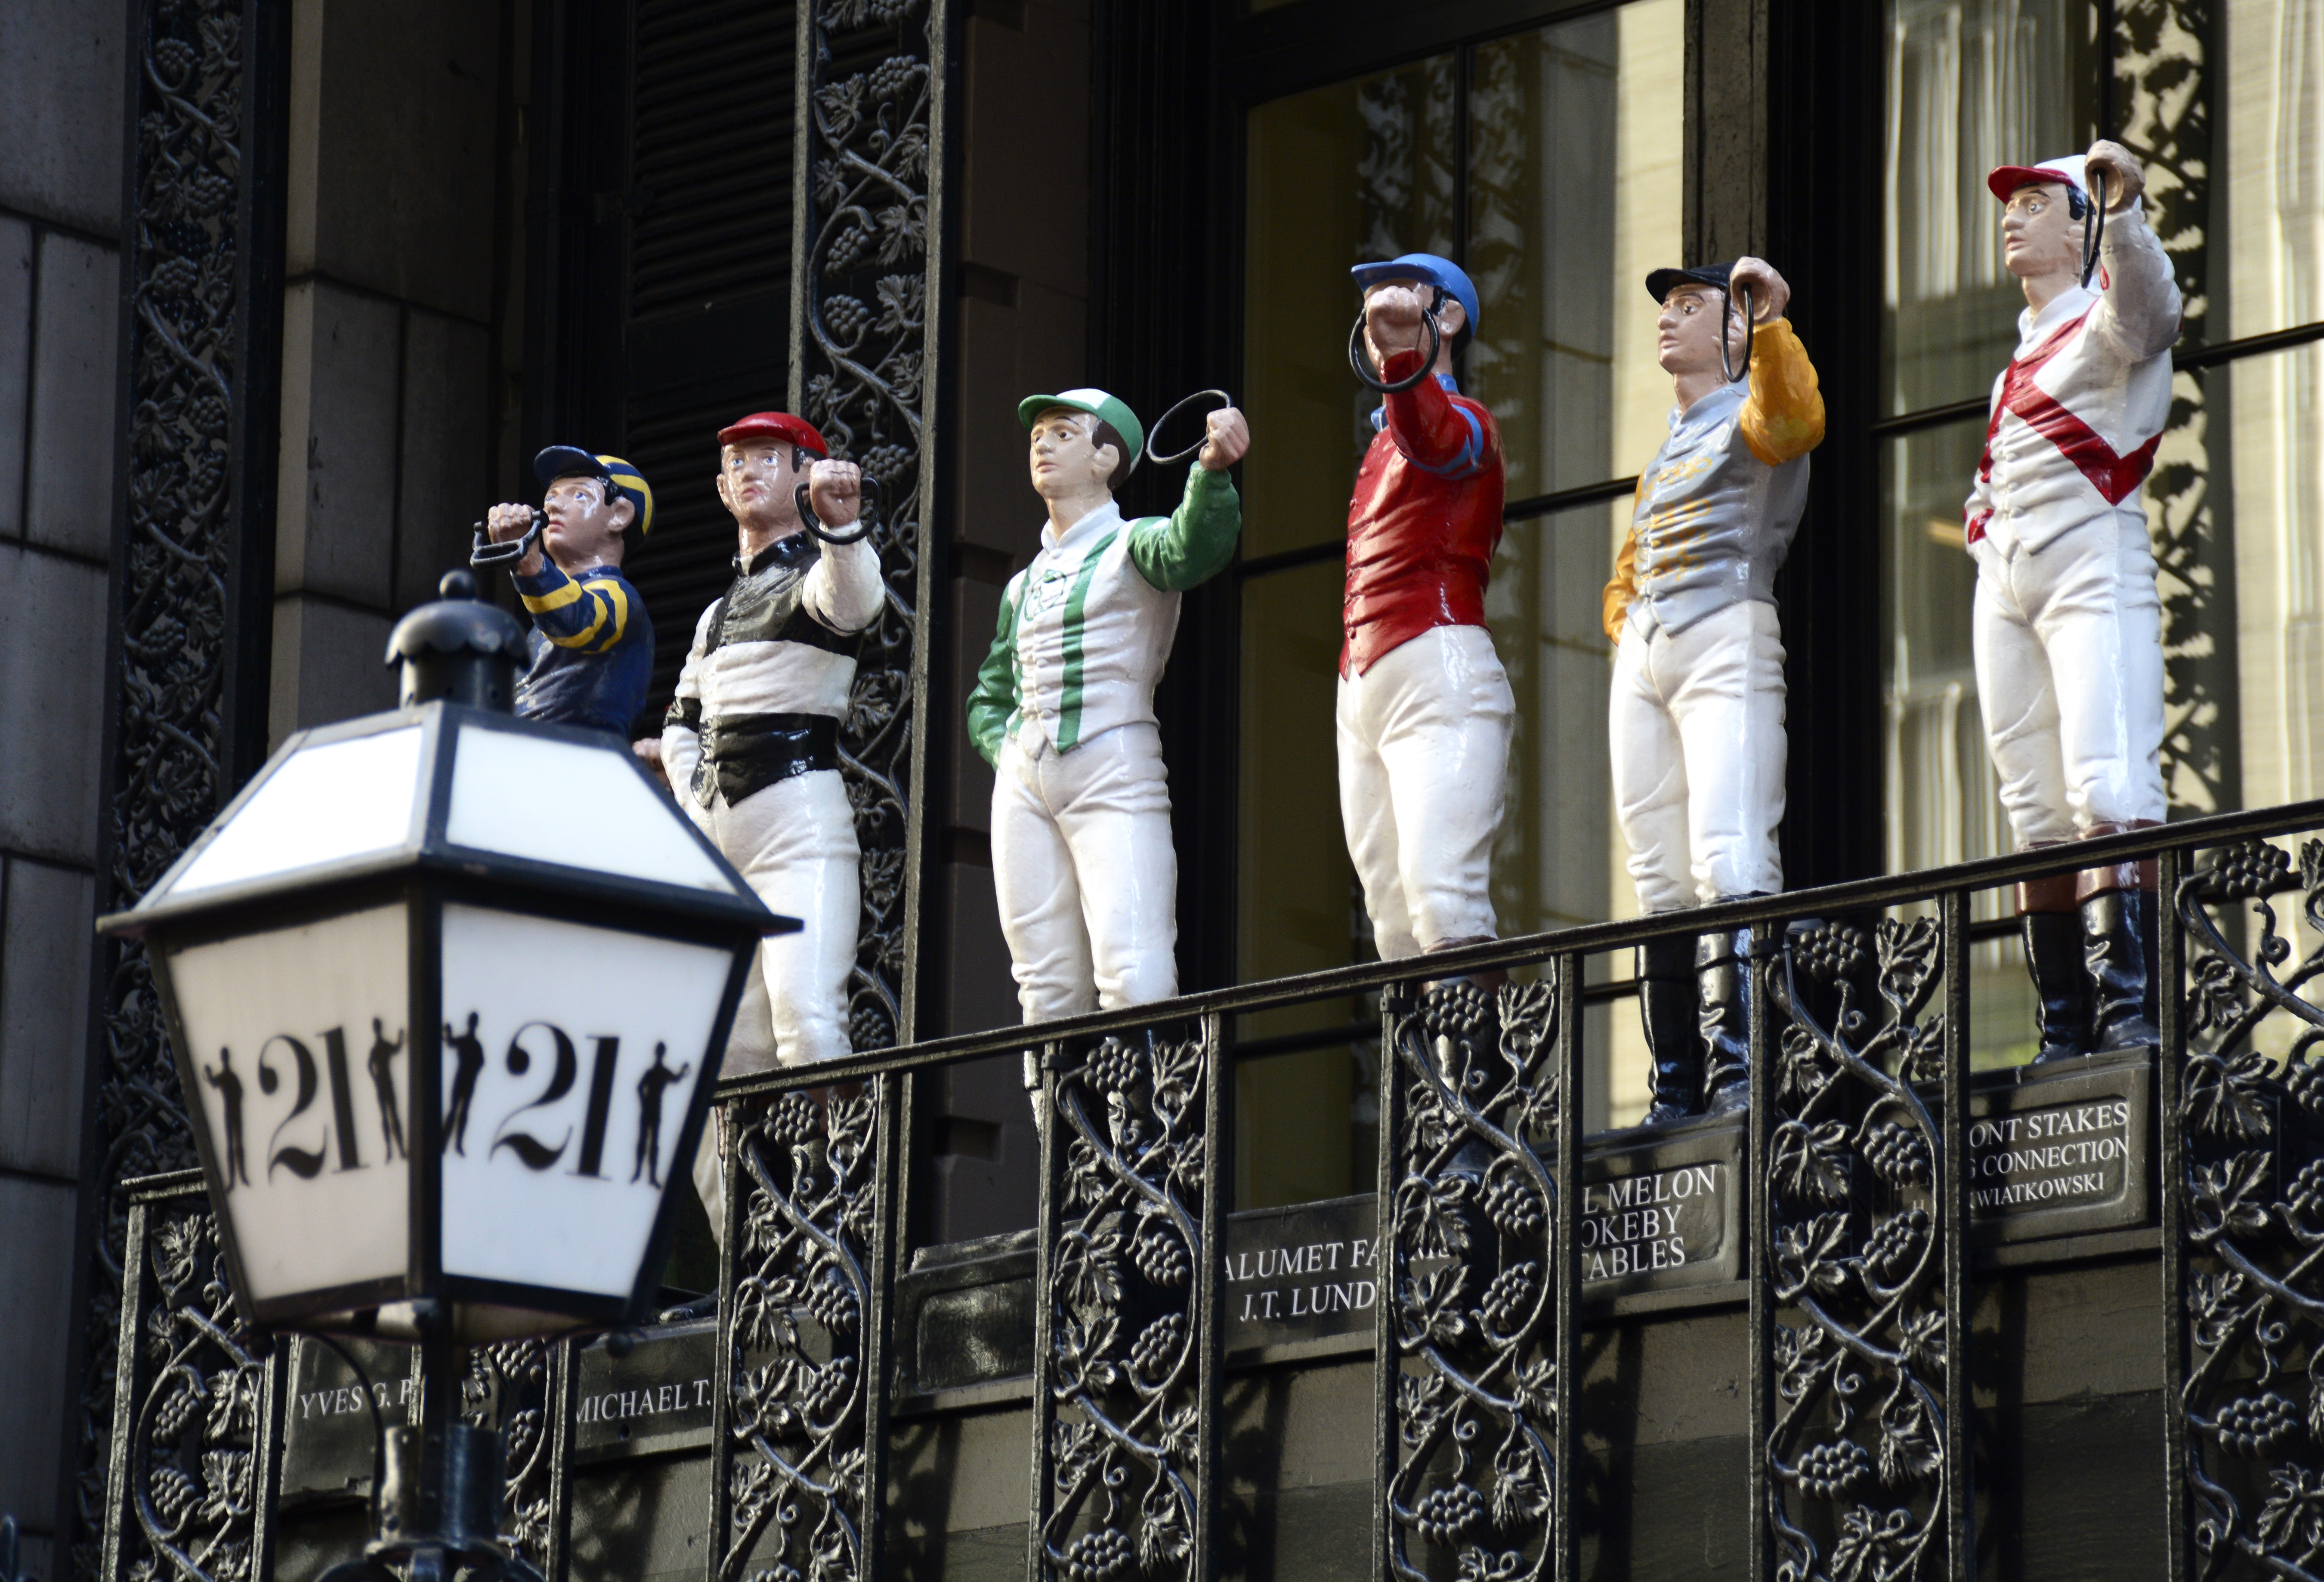 The 21 Club in Midtown Manhattan, a former prohibition-era speakeasy, features a colorful collection of small painted cast iron lawn jockey statues which adorn the balcony above the entrance.